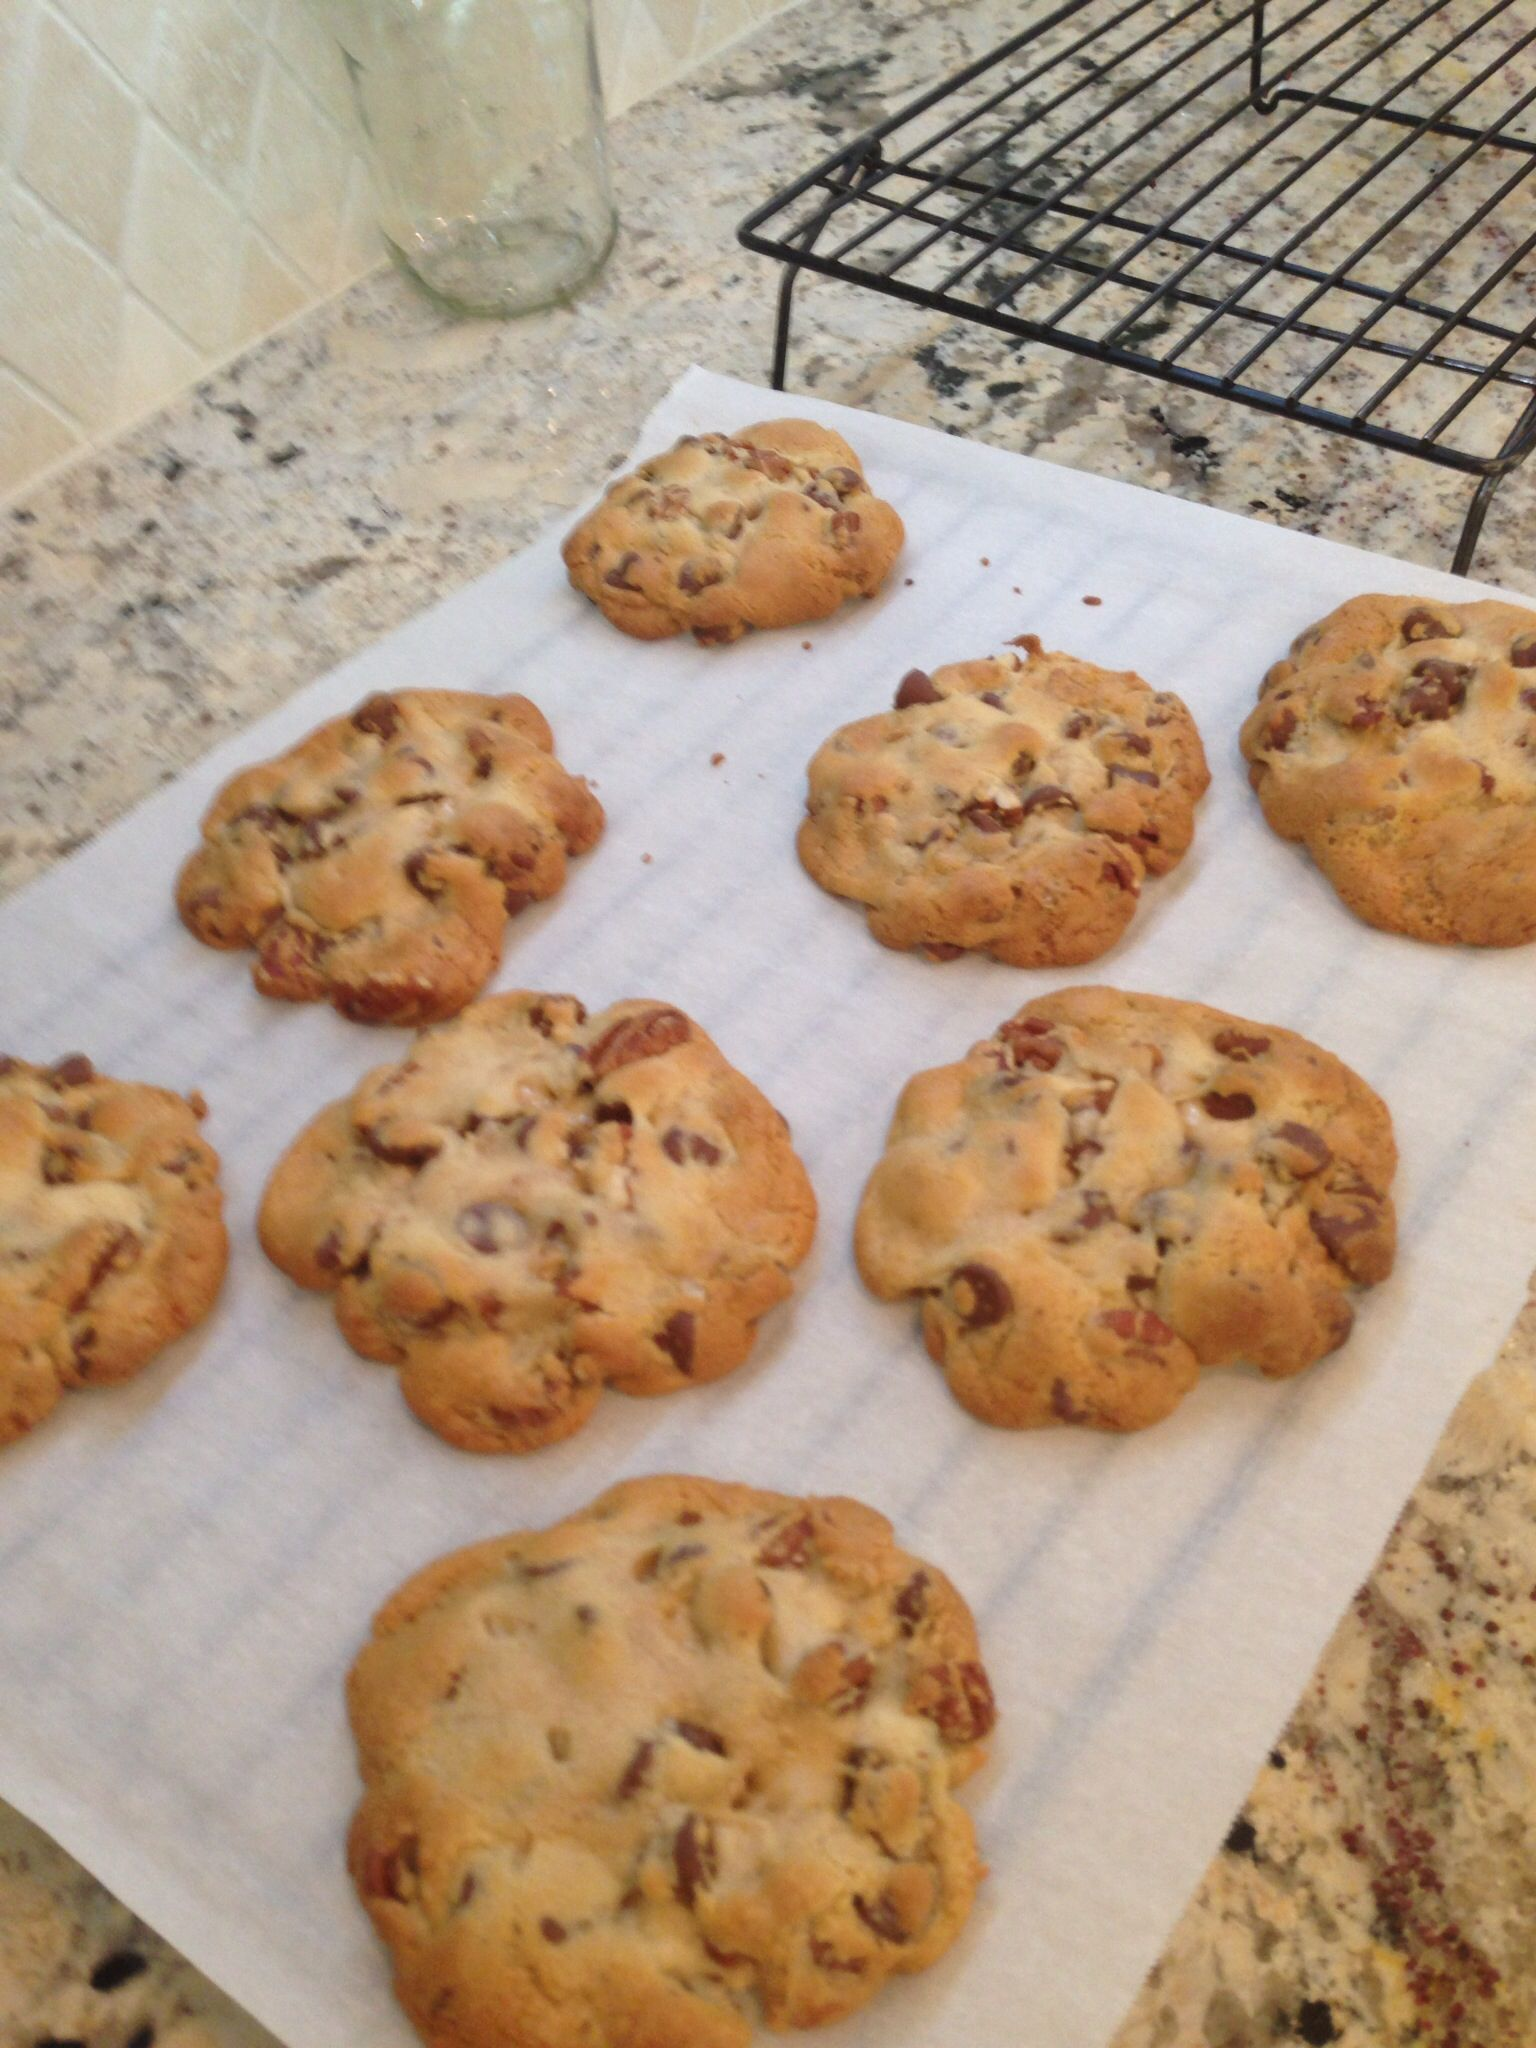 Rose's inimitable chocolate chip cookies